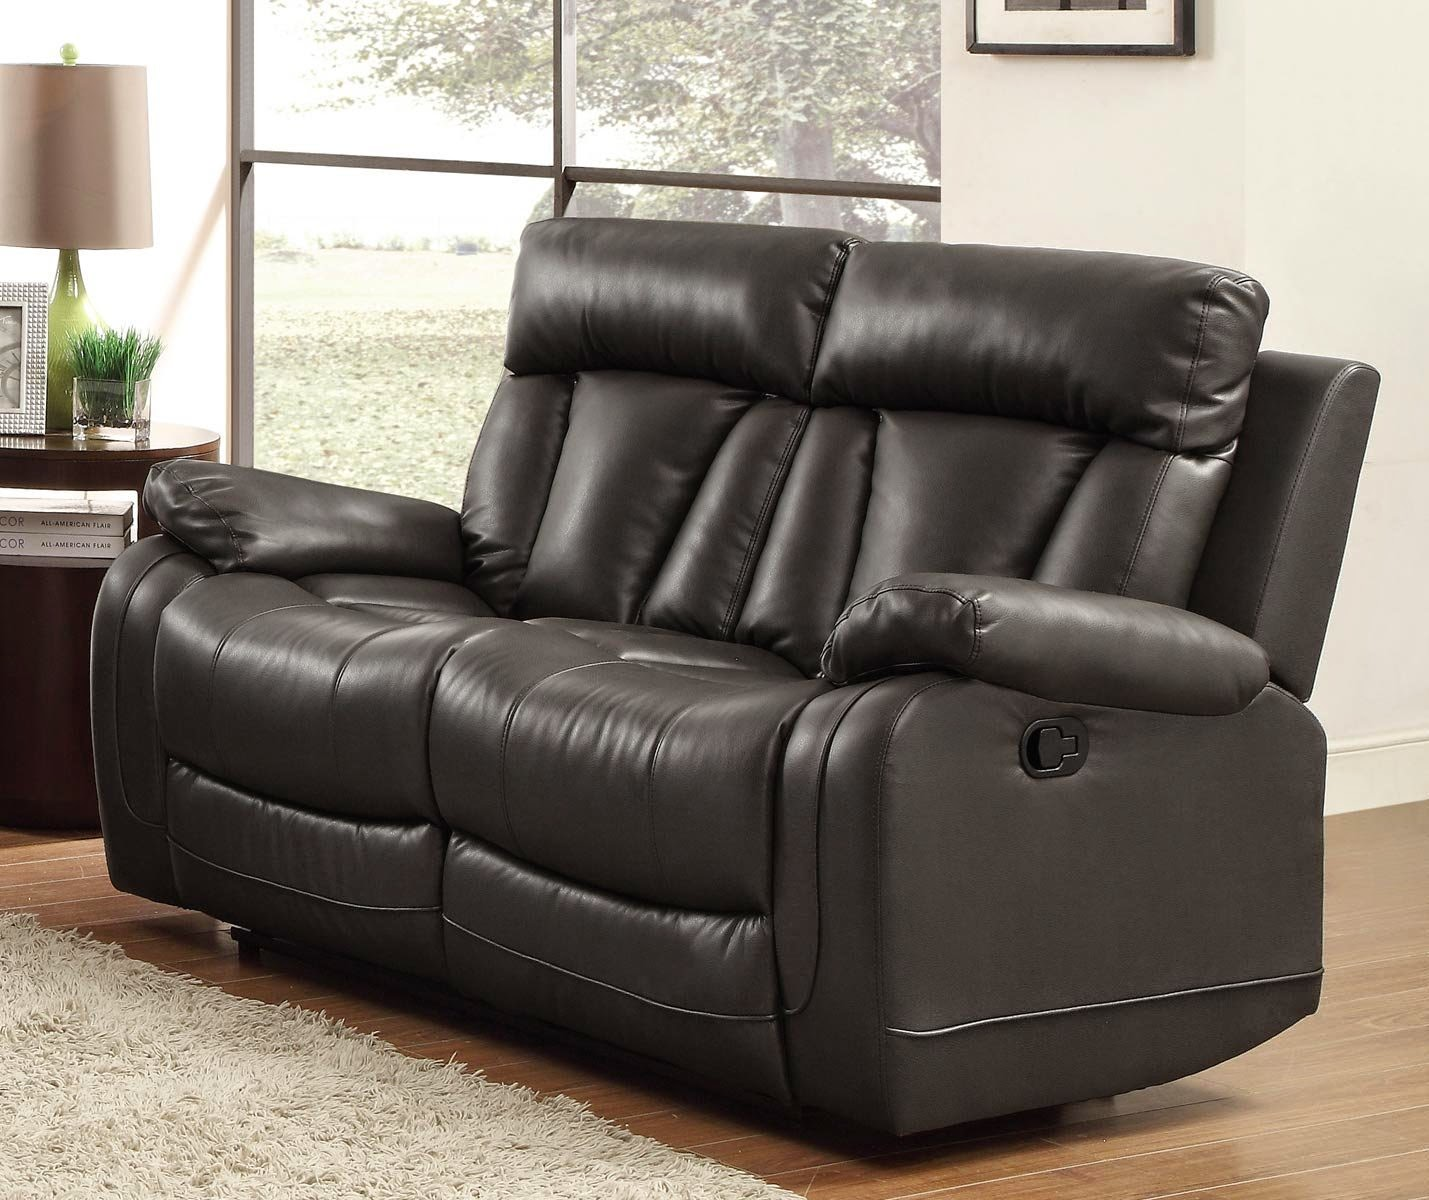 Cheap recliner sofas for sale black leather reclining for Sectionals for sale